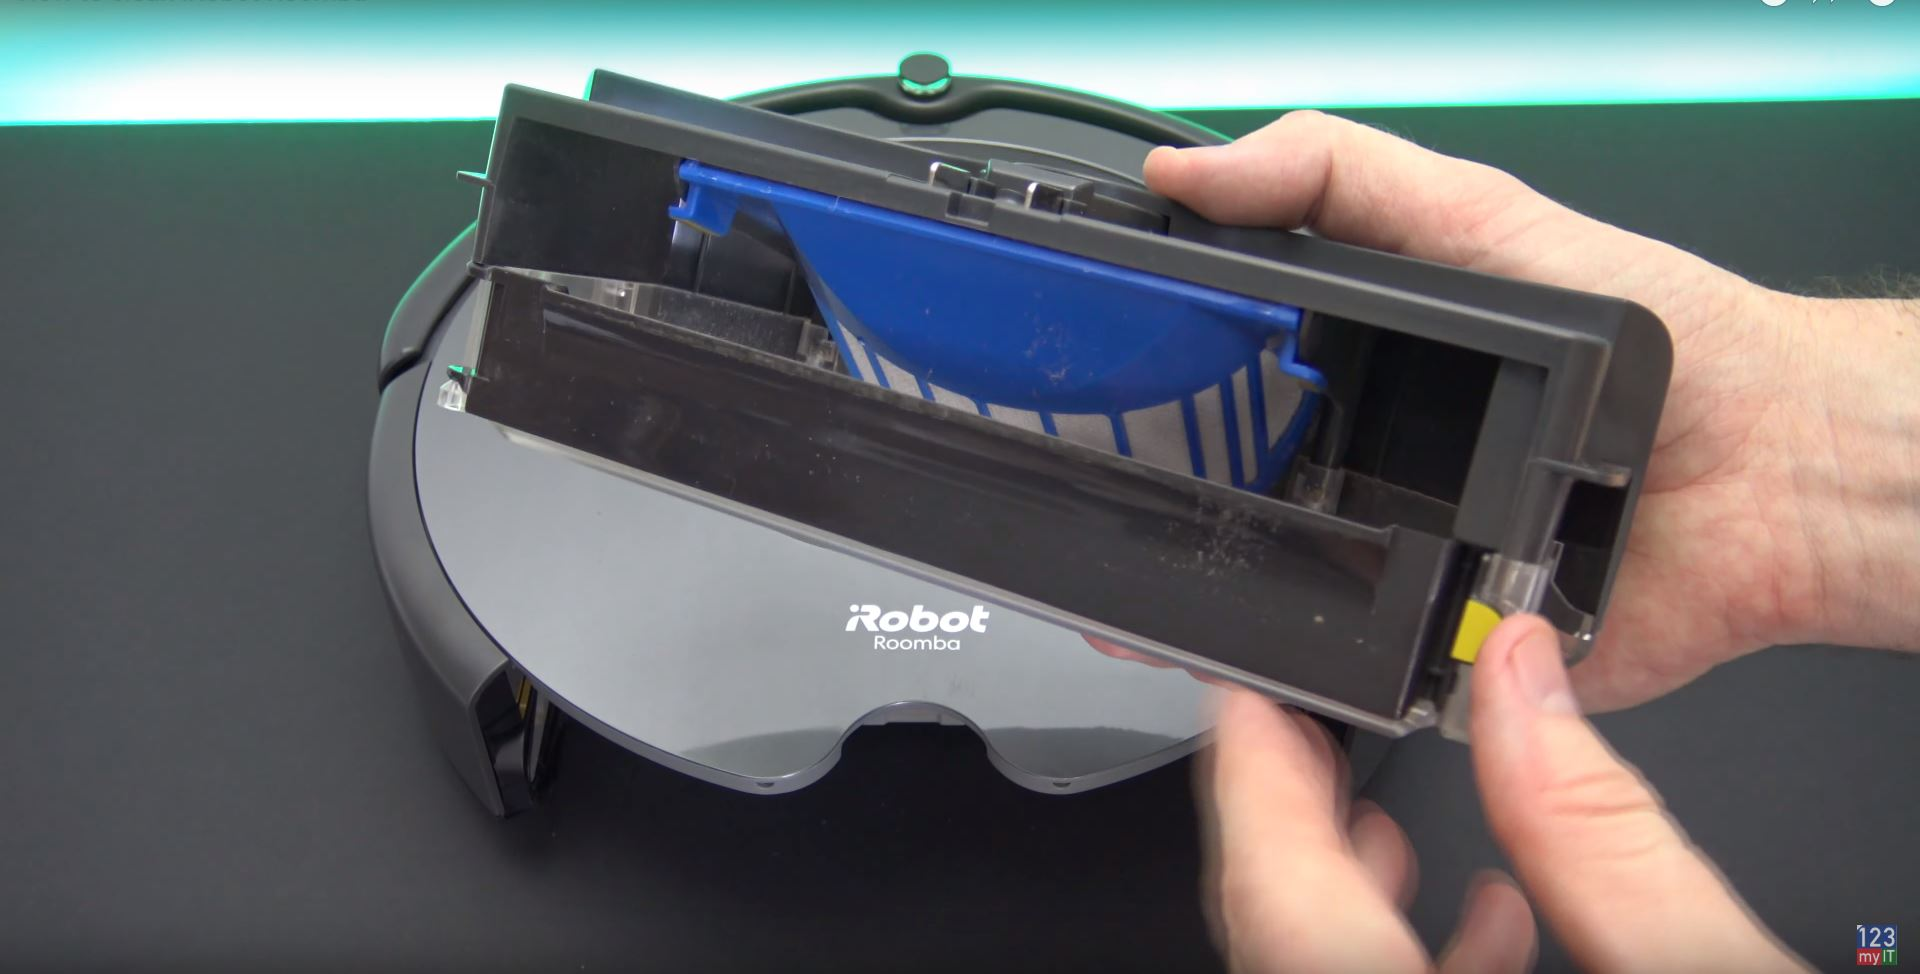 clean the iRobot Roomba